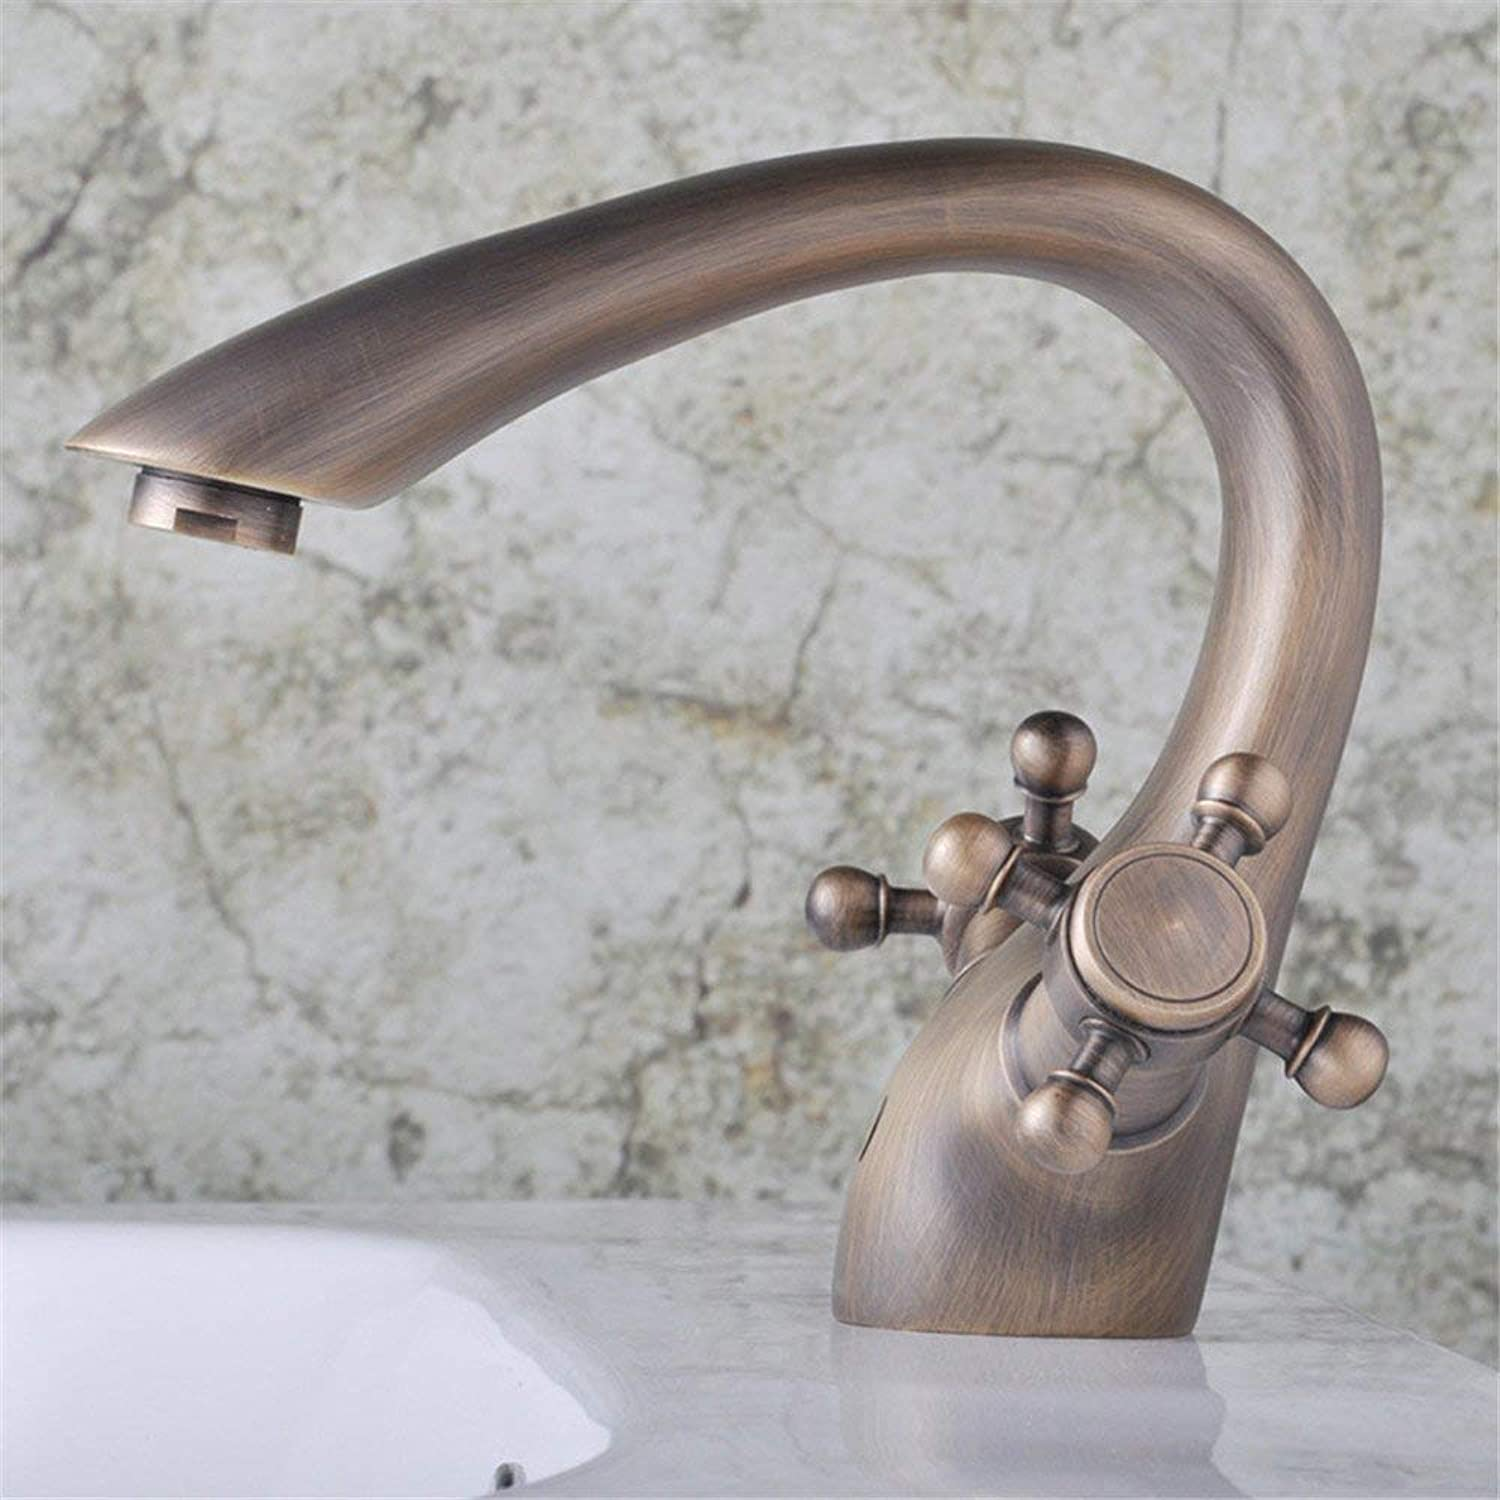 Oudan Mixing Water Faucet Antique Basin Taps His Hands Round (color   -, Size   -)